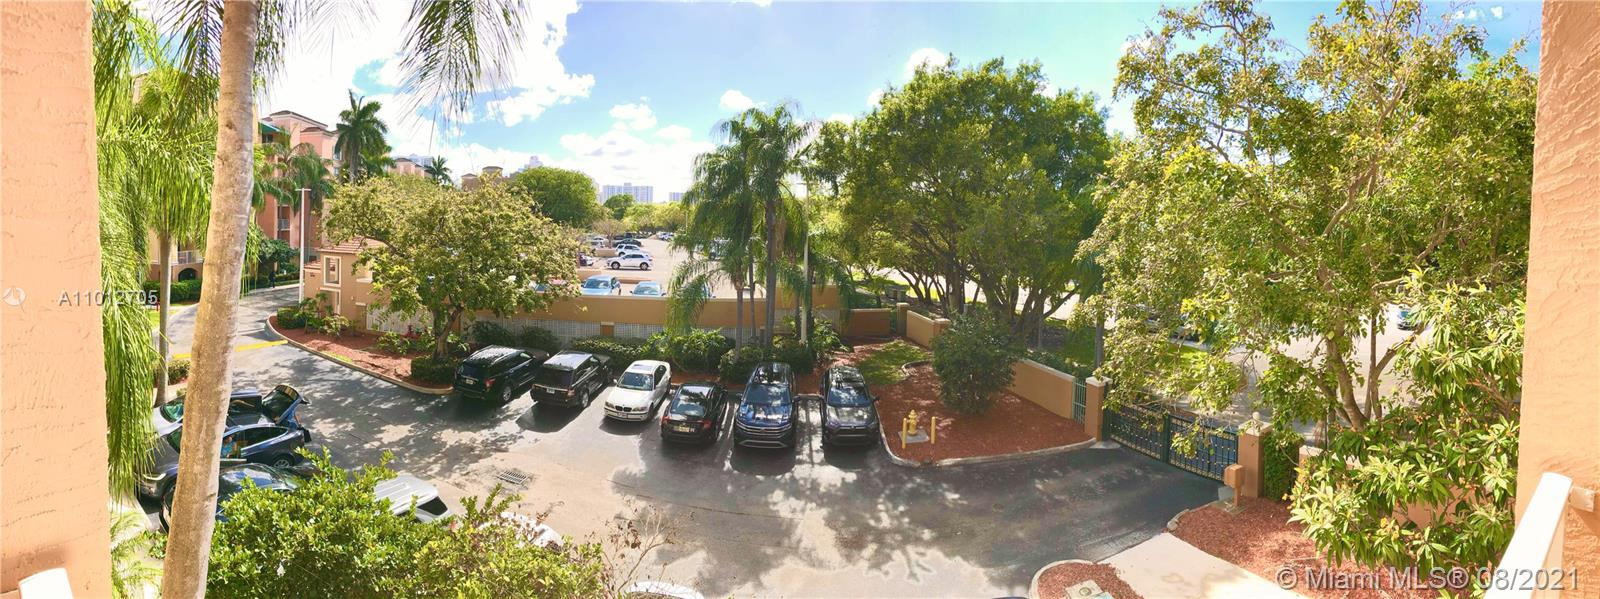 Yacht Club 9 at Aventura #1301 - 19999 E Country Club Dr #1301, Aventura, FL 33180